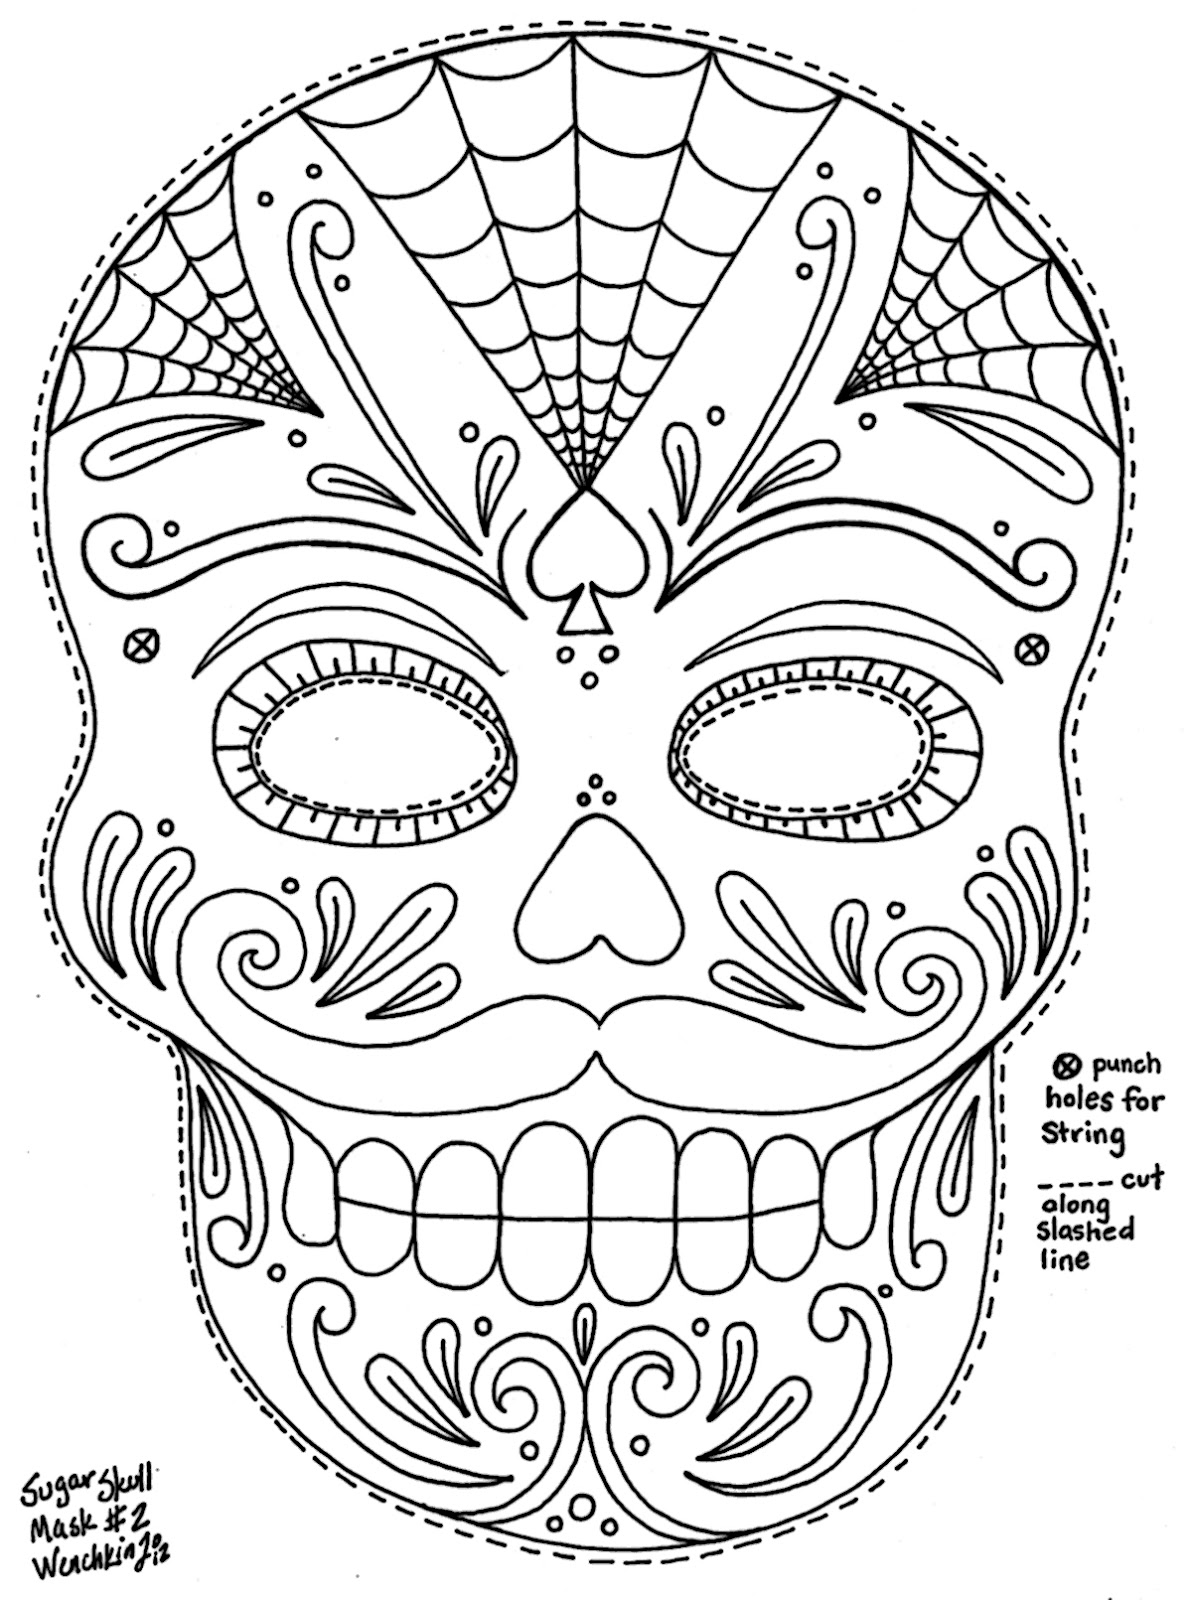 candy skull coloring pages yucca flats nm october 2012 skull candy coloring pages